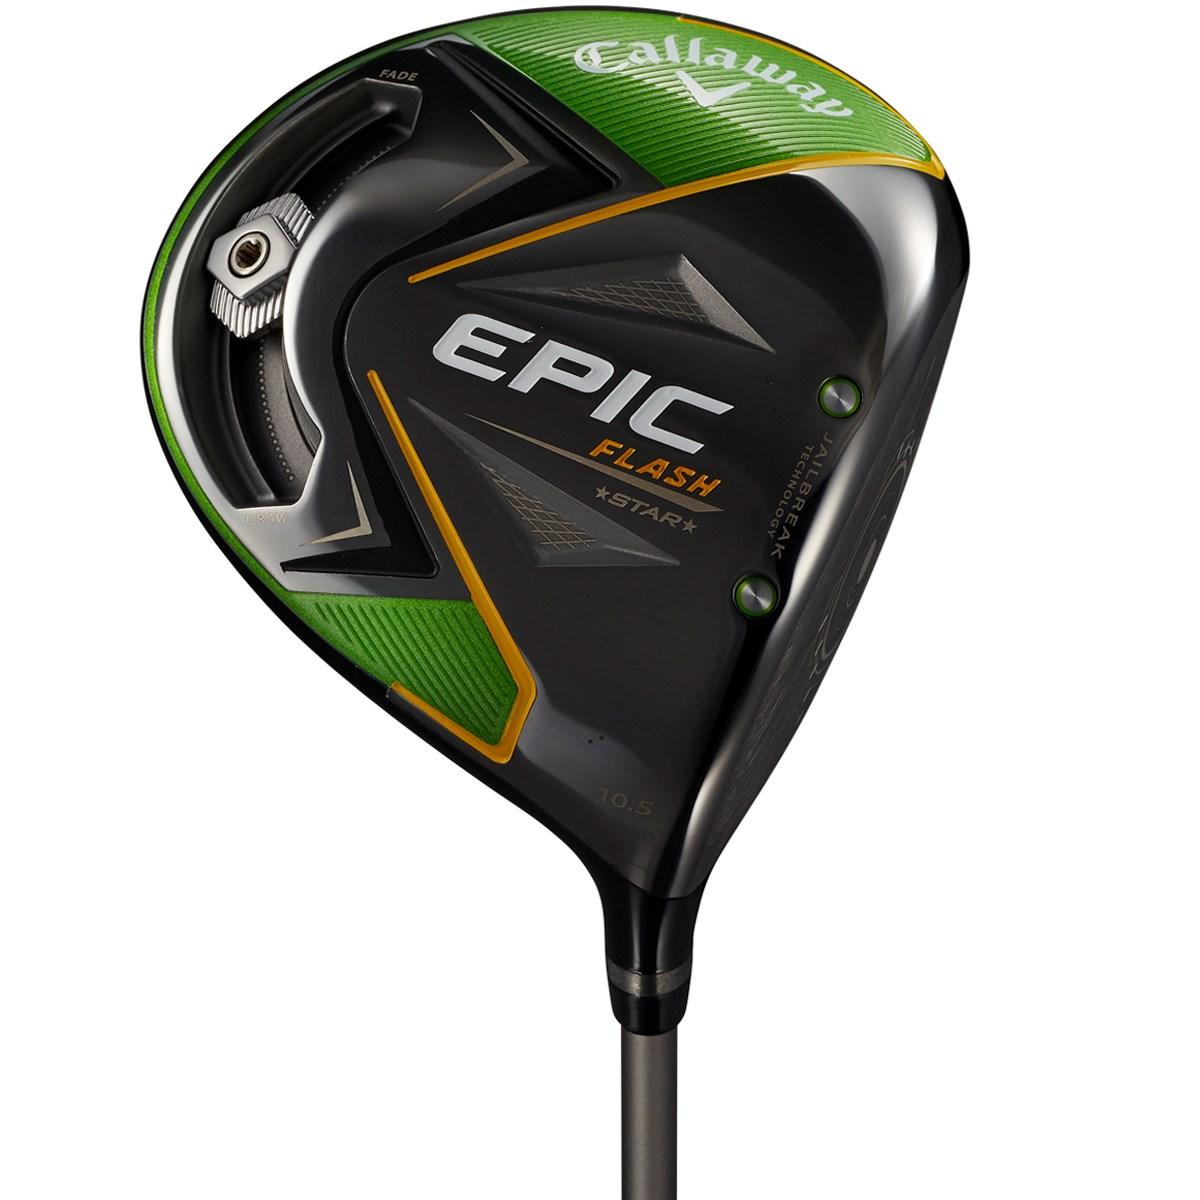 キャロウェイゴルフ GBB EPIC エピックフラッシュ STAR ドライバー Speeder Evolution for Callaway シャフト:Speeder Evolution for Callaway SR 10.5° 59.5° 45.75inch